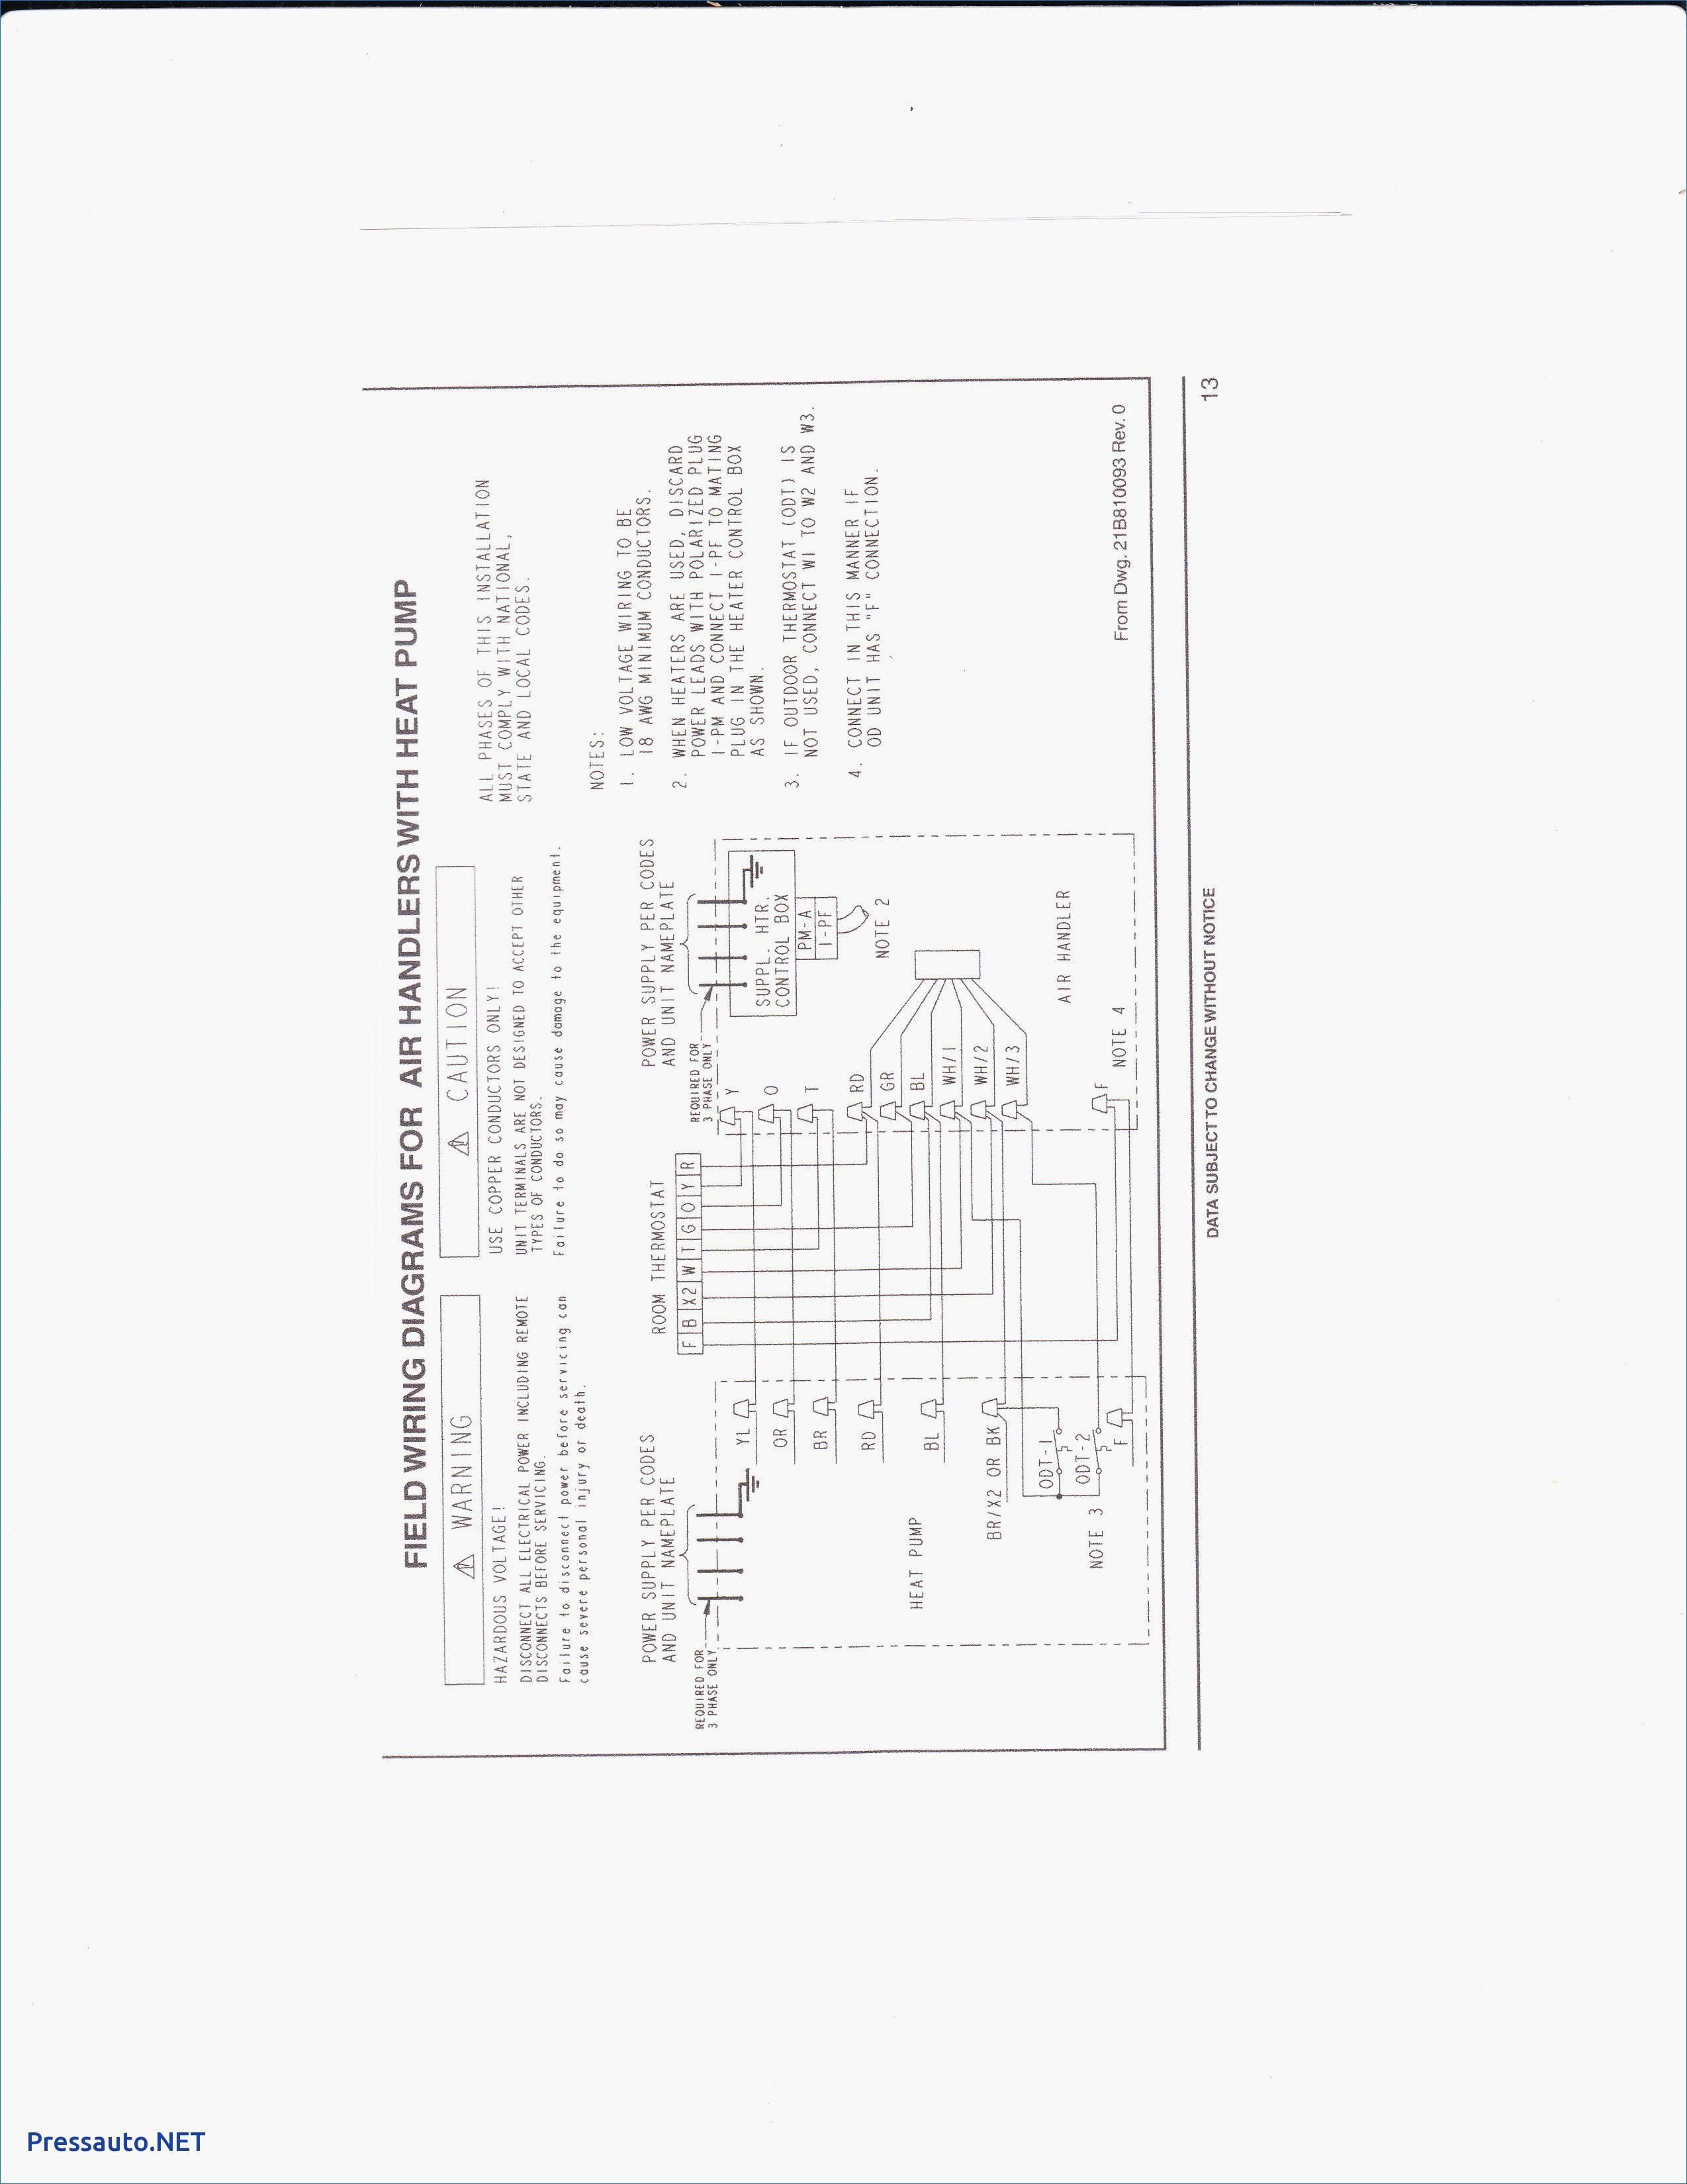 Wiring Diagram for York Air Conditioner New Air Conditioner Wiring Wiring Diagram Air Conditioning Pressor